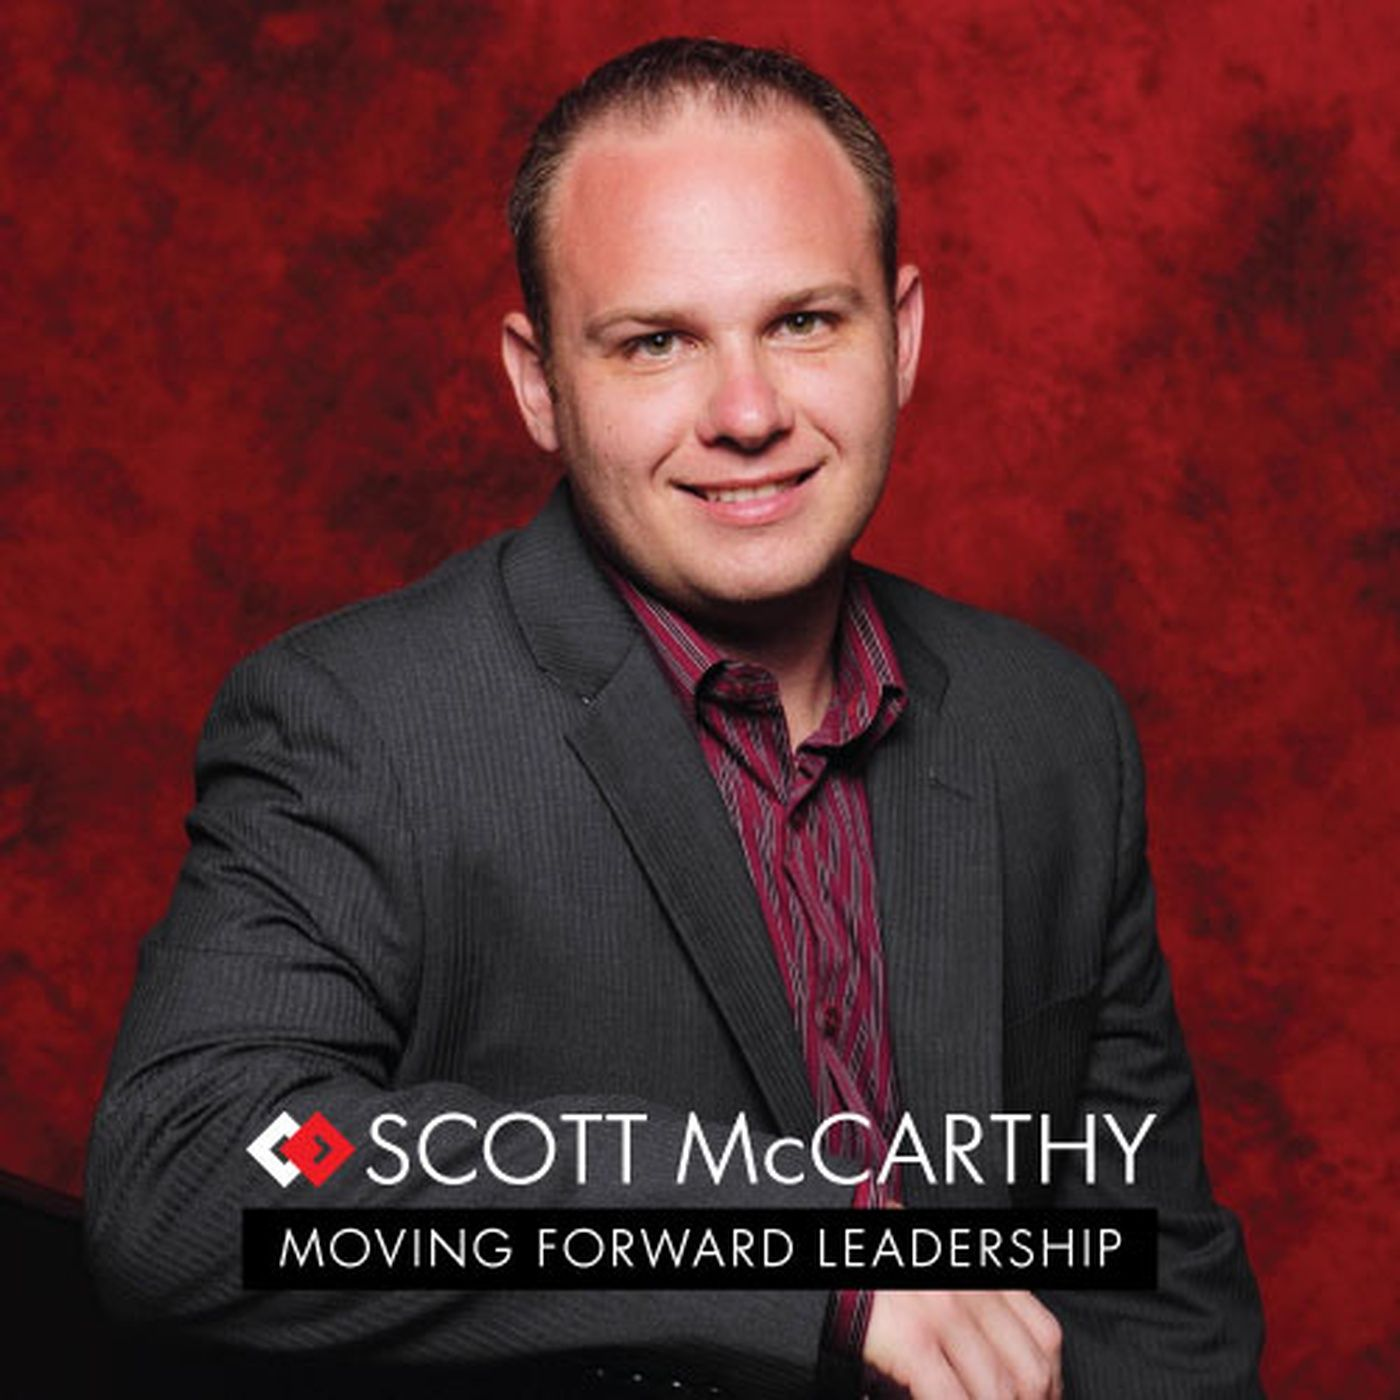 Moving Forward Leadership: Inspire | Mentor | Lead